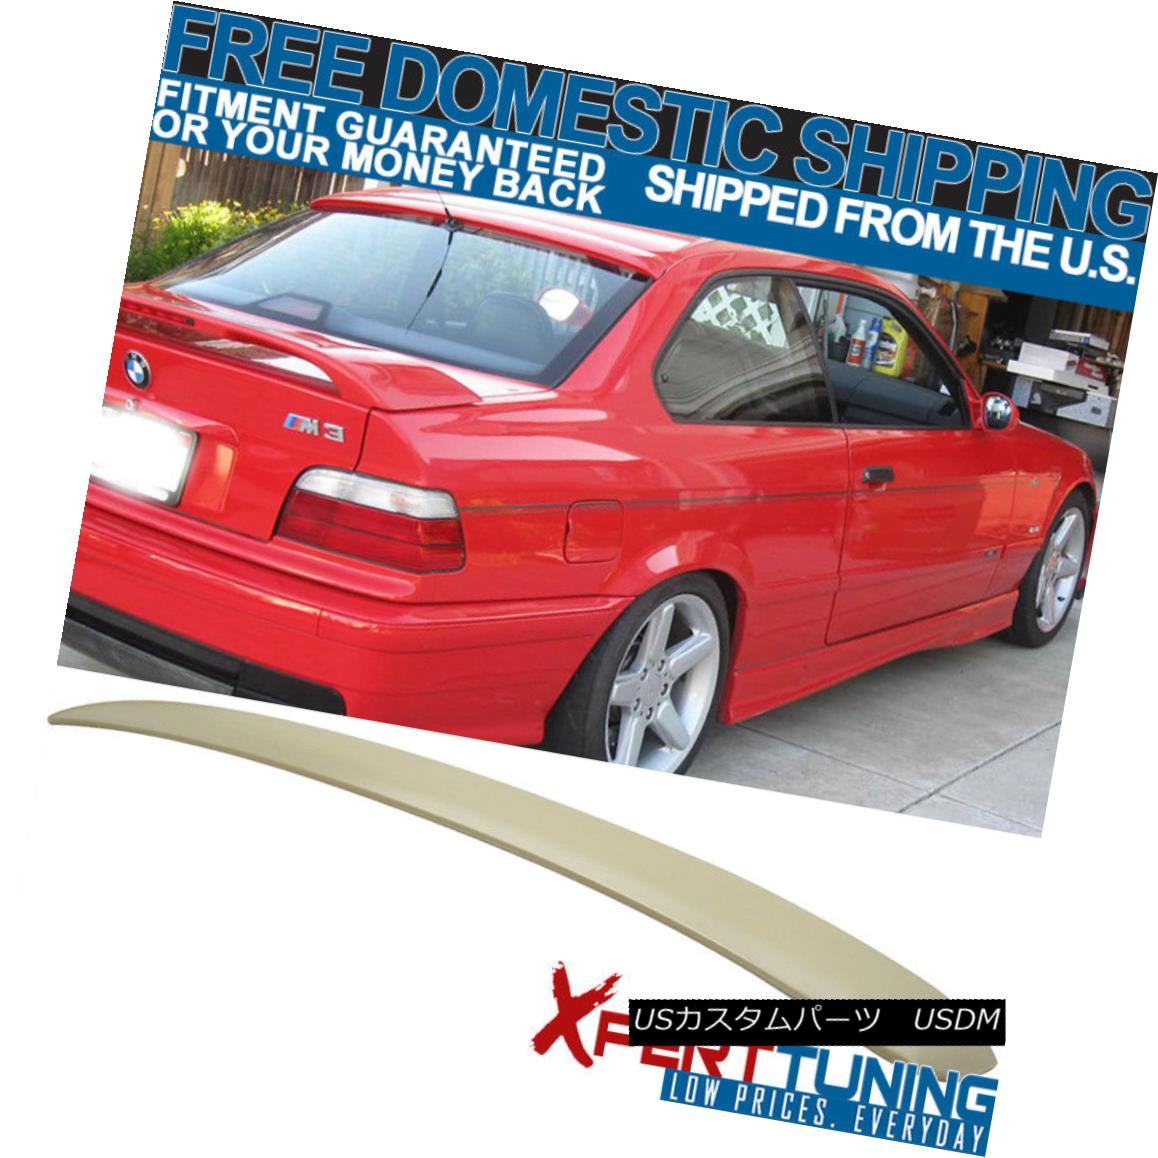 外装・エアロパーツ, その他  92 93 94 95 96 97 98 BMW 3 Series E36 2Dr AC Style Unpainted Roof Spoiler ABS 92 93 94 95 96 97 98 BMW 3E36 2Dr ACABS